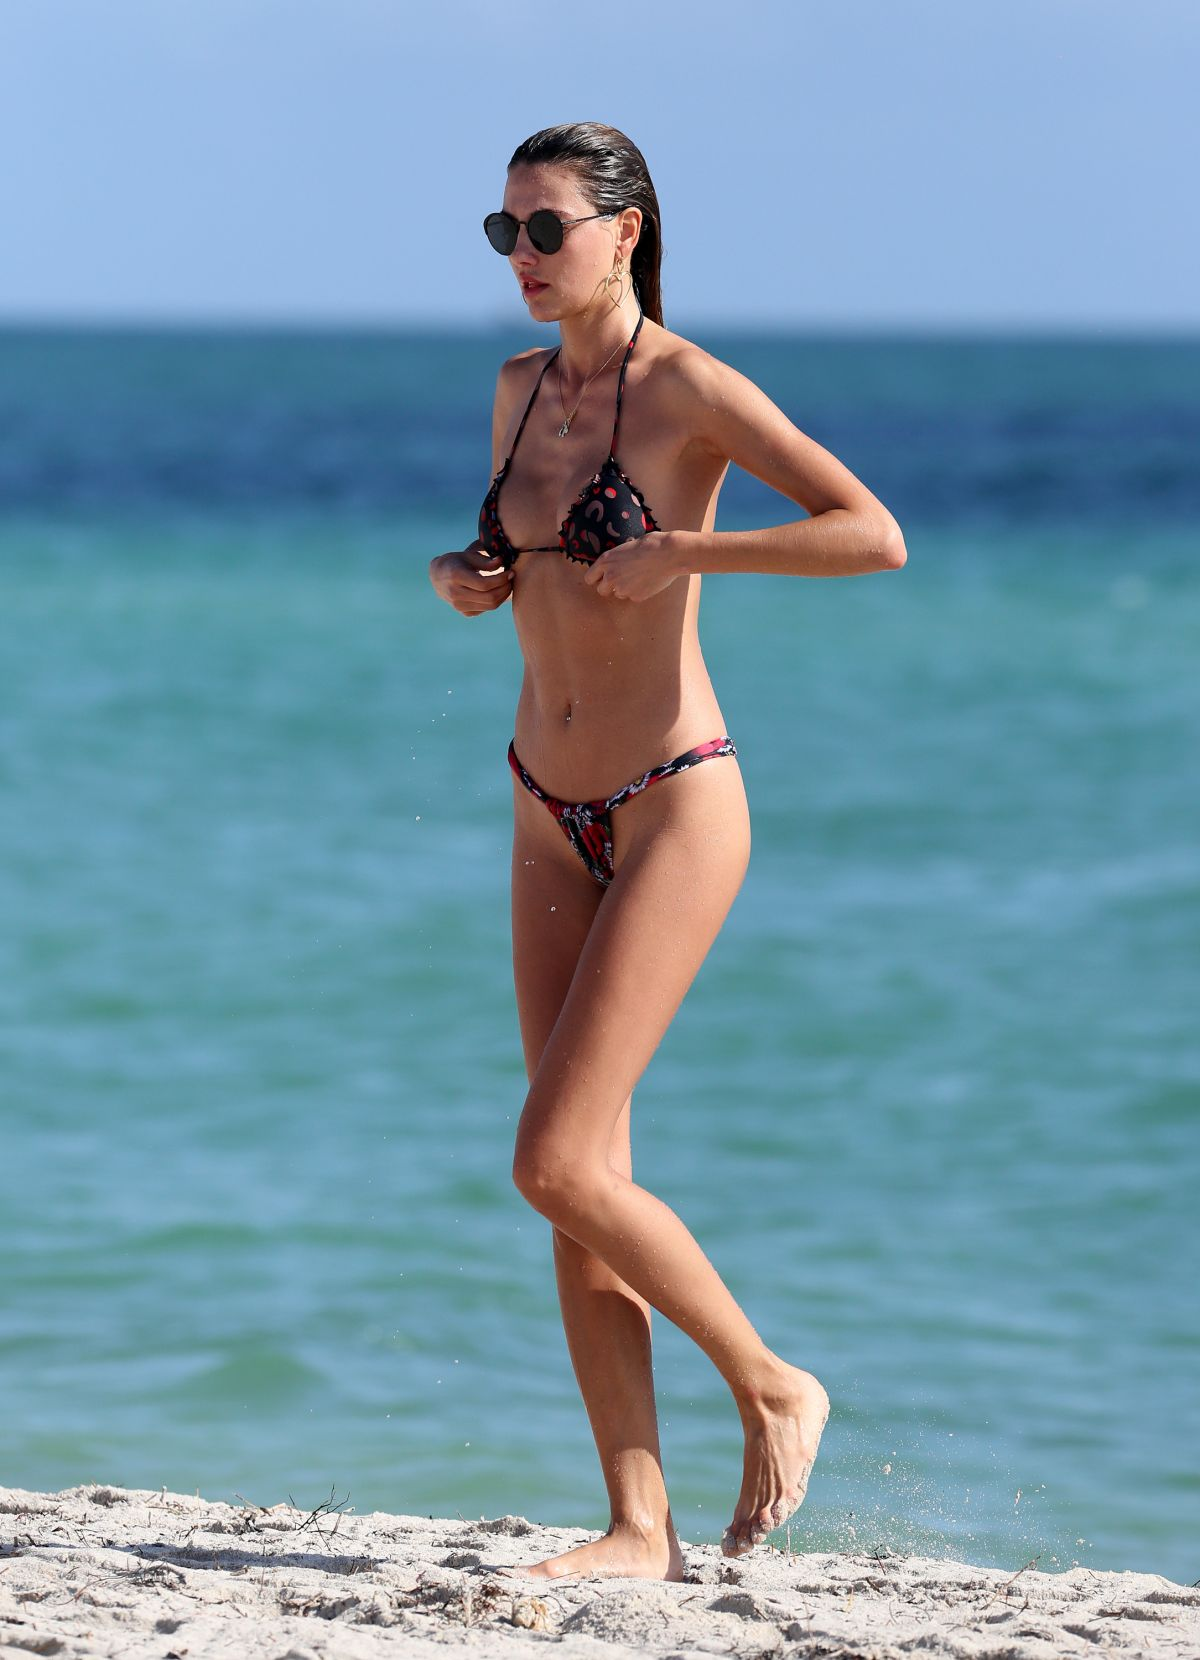 Alina Baikova in Bikini on the beach in Miami Pic 15 of 35